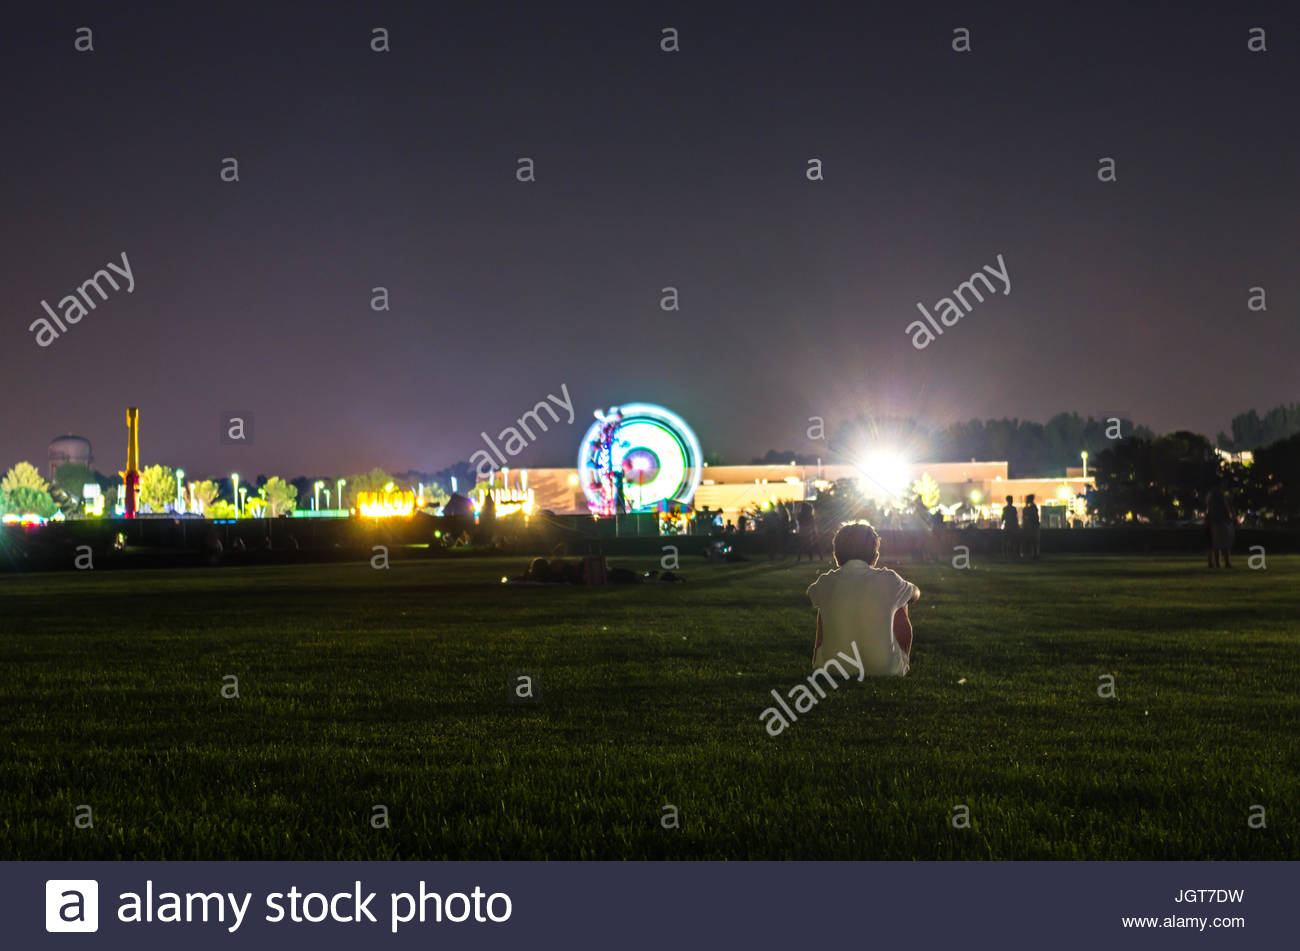 a young boy watching the fair, waiting for a fireworks show at the close of the Ankeny Summerfest, an annual summer - Stock Image